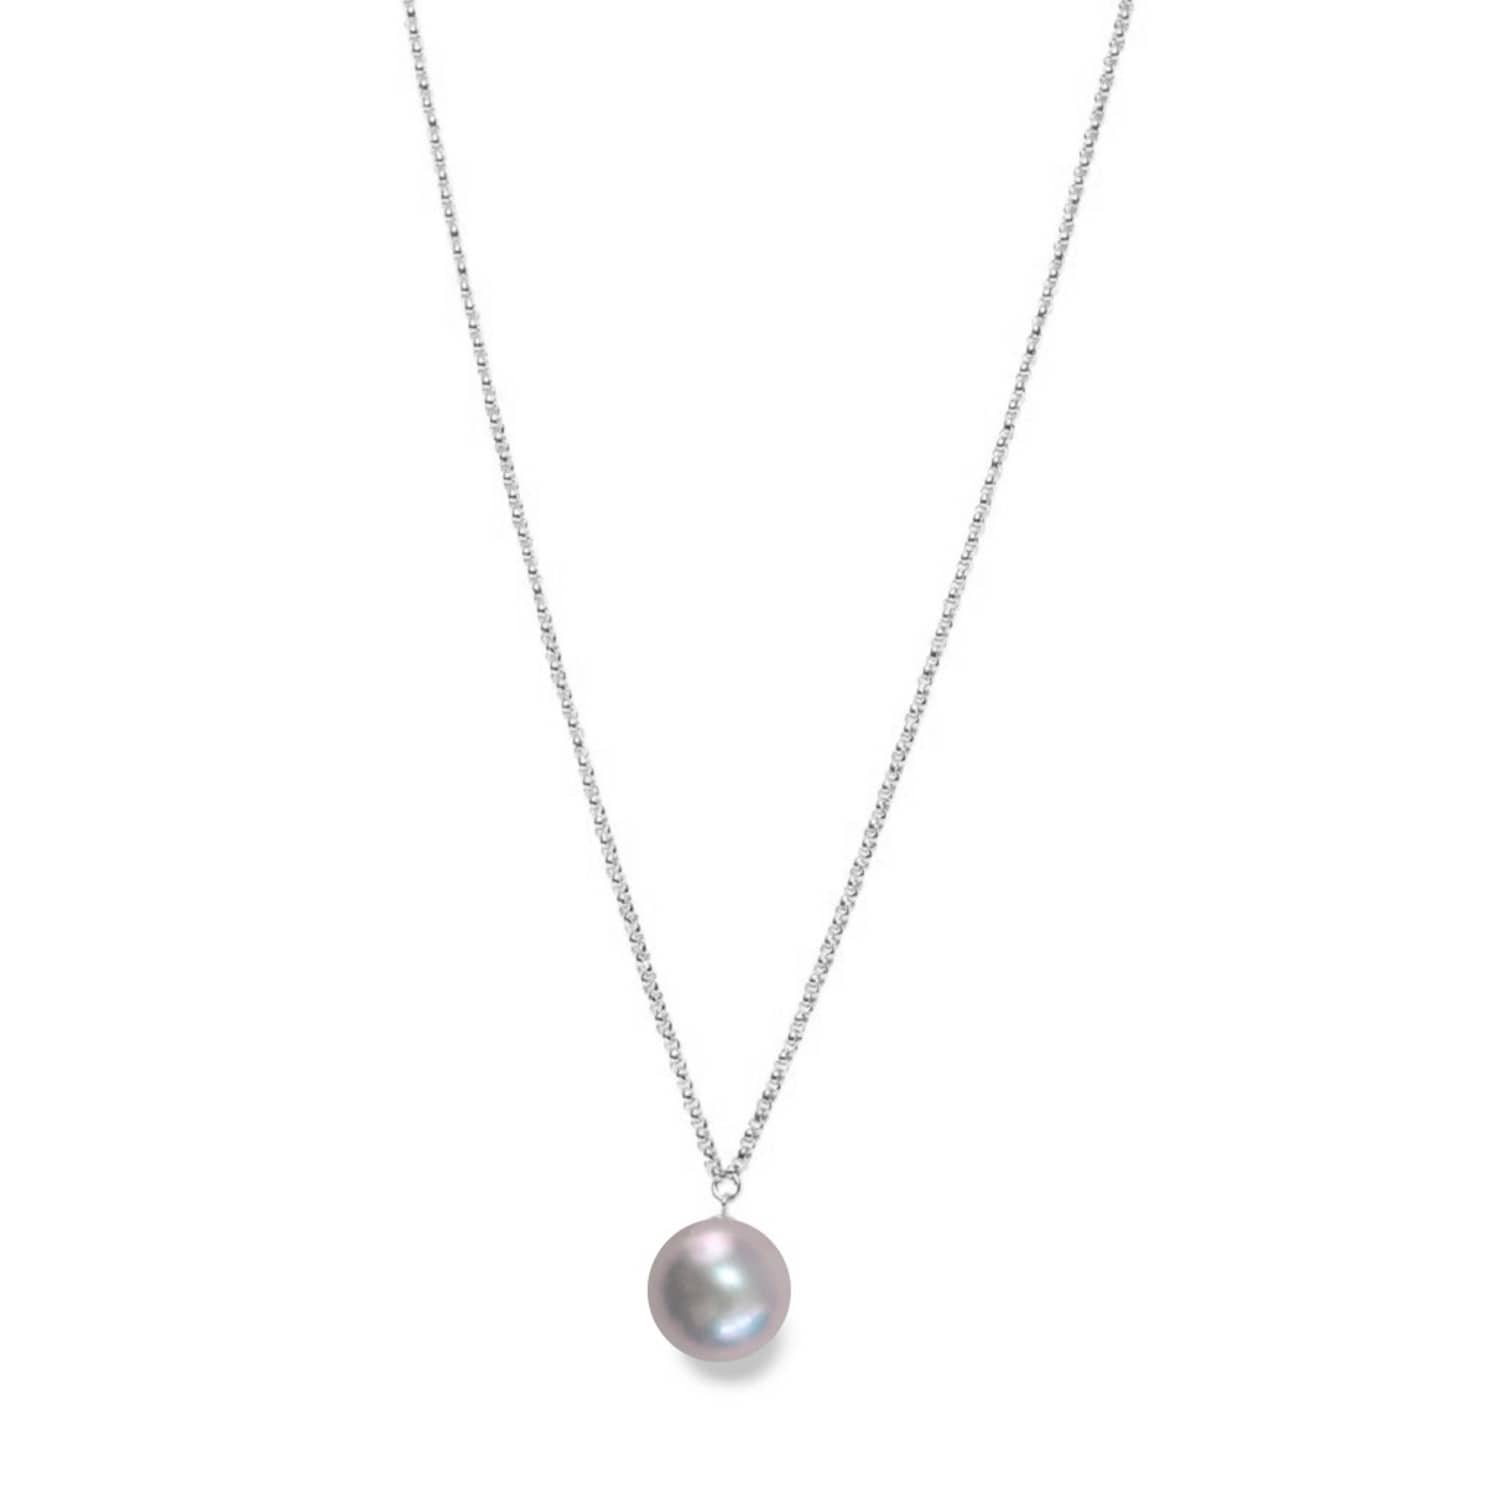 ORA Pearls Sterling Silver XXL White Pearl Pendant Necklace kuwyZ